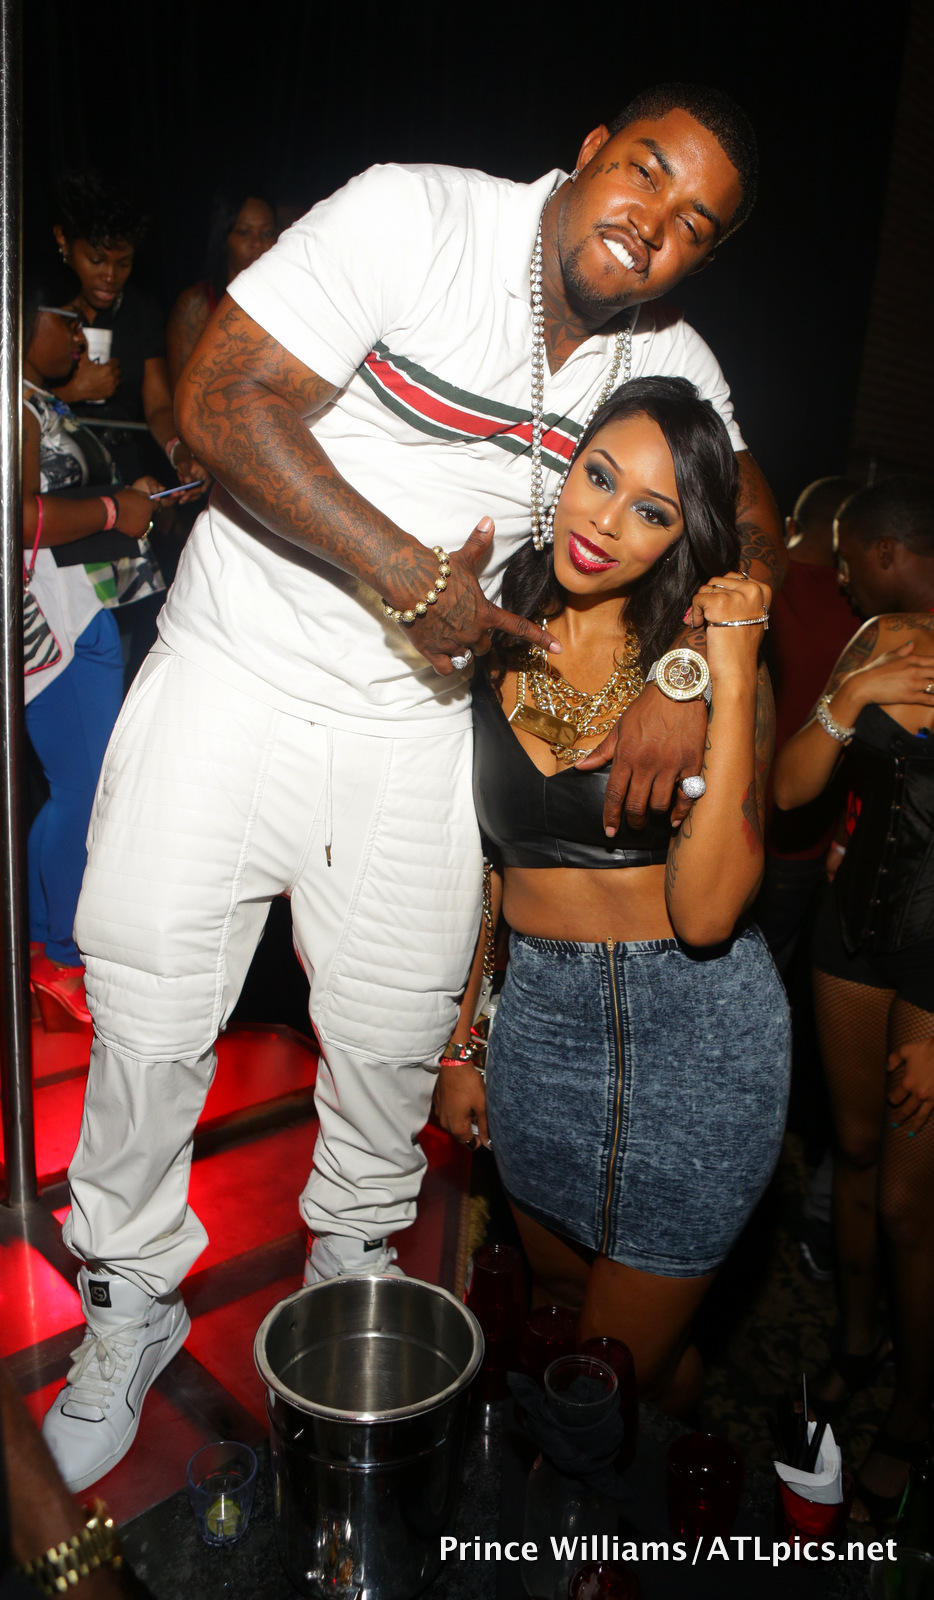 Lil scrappy dating 2013